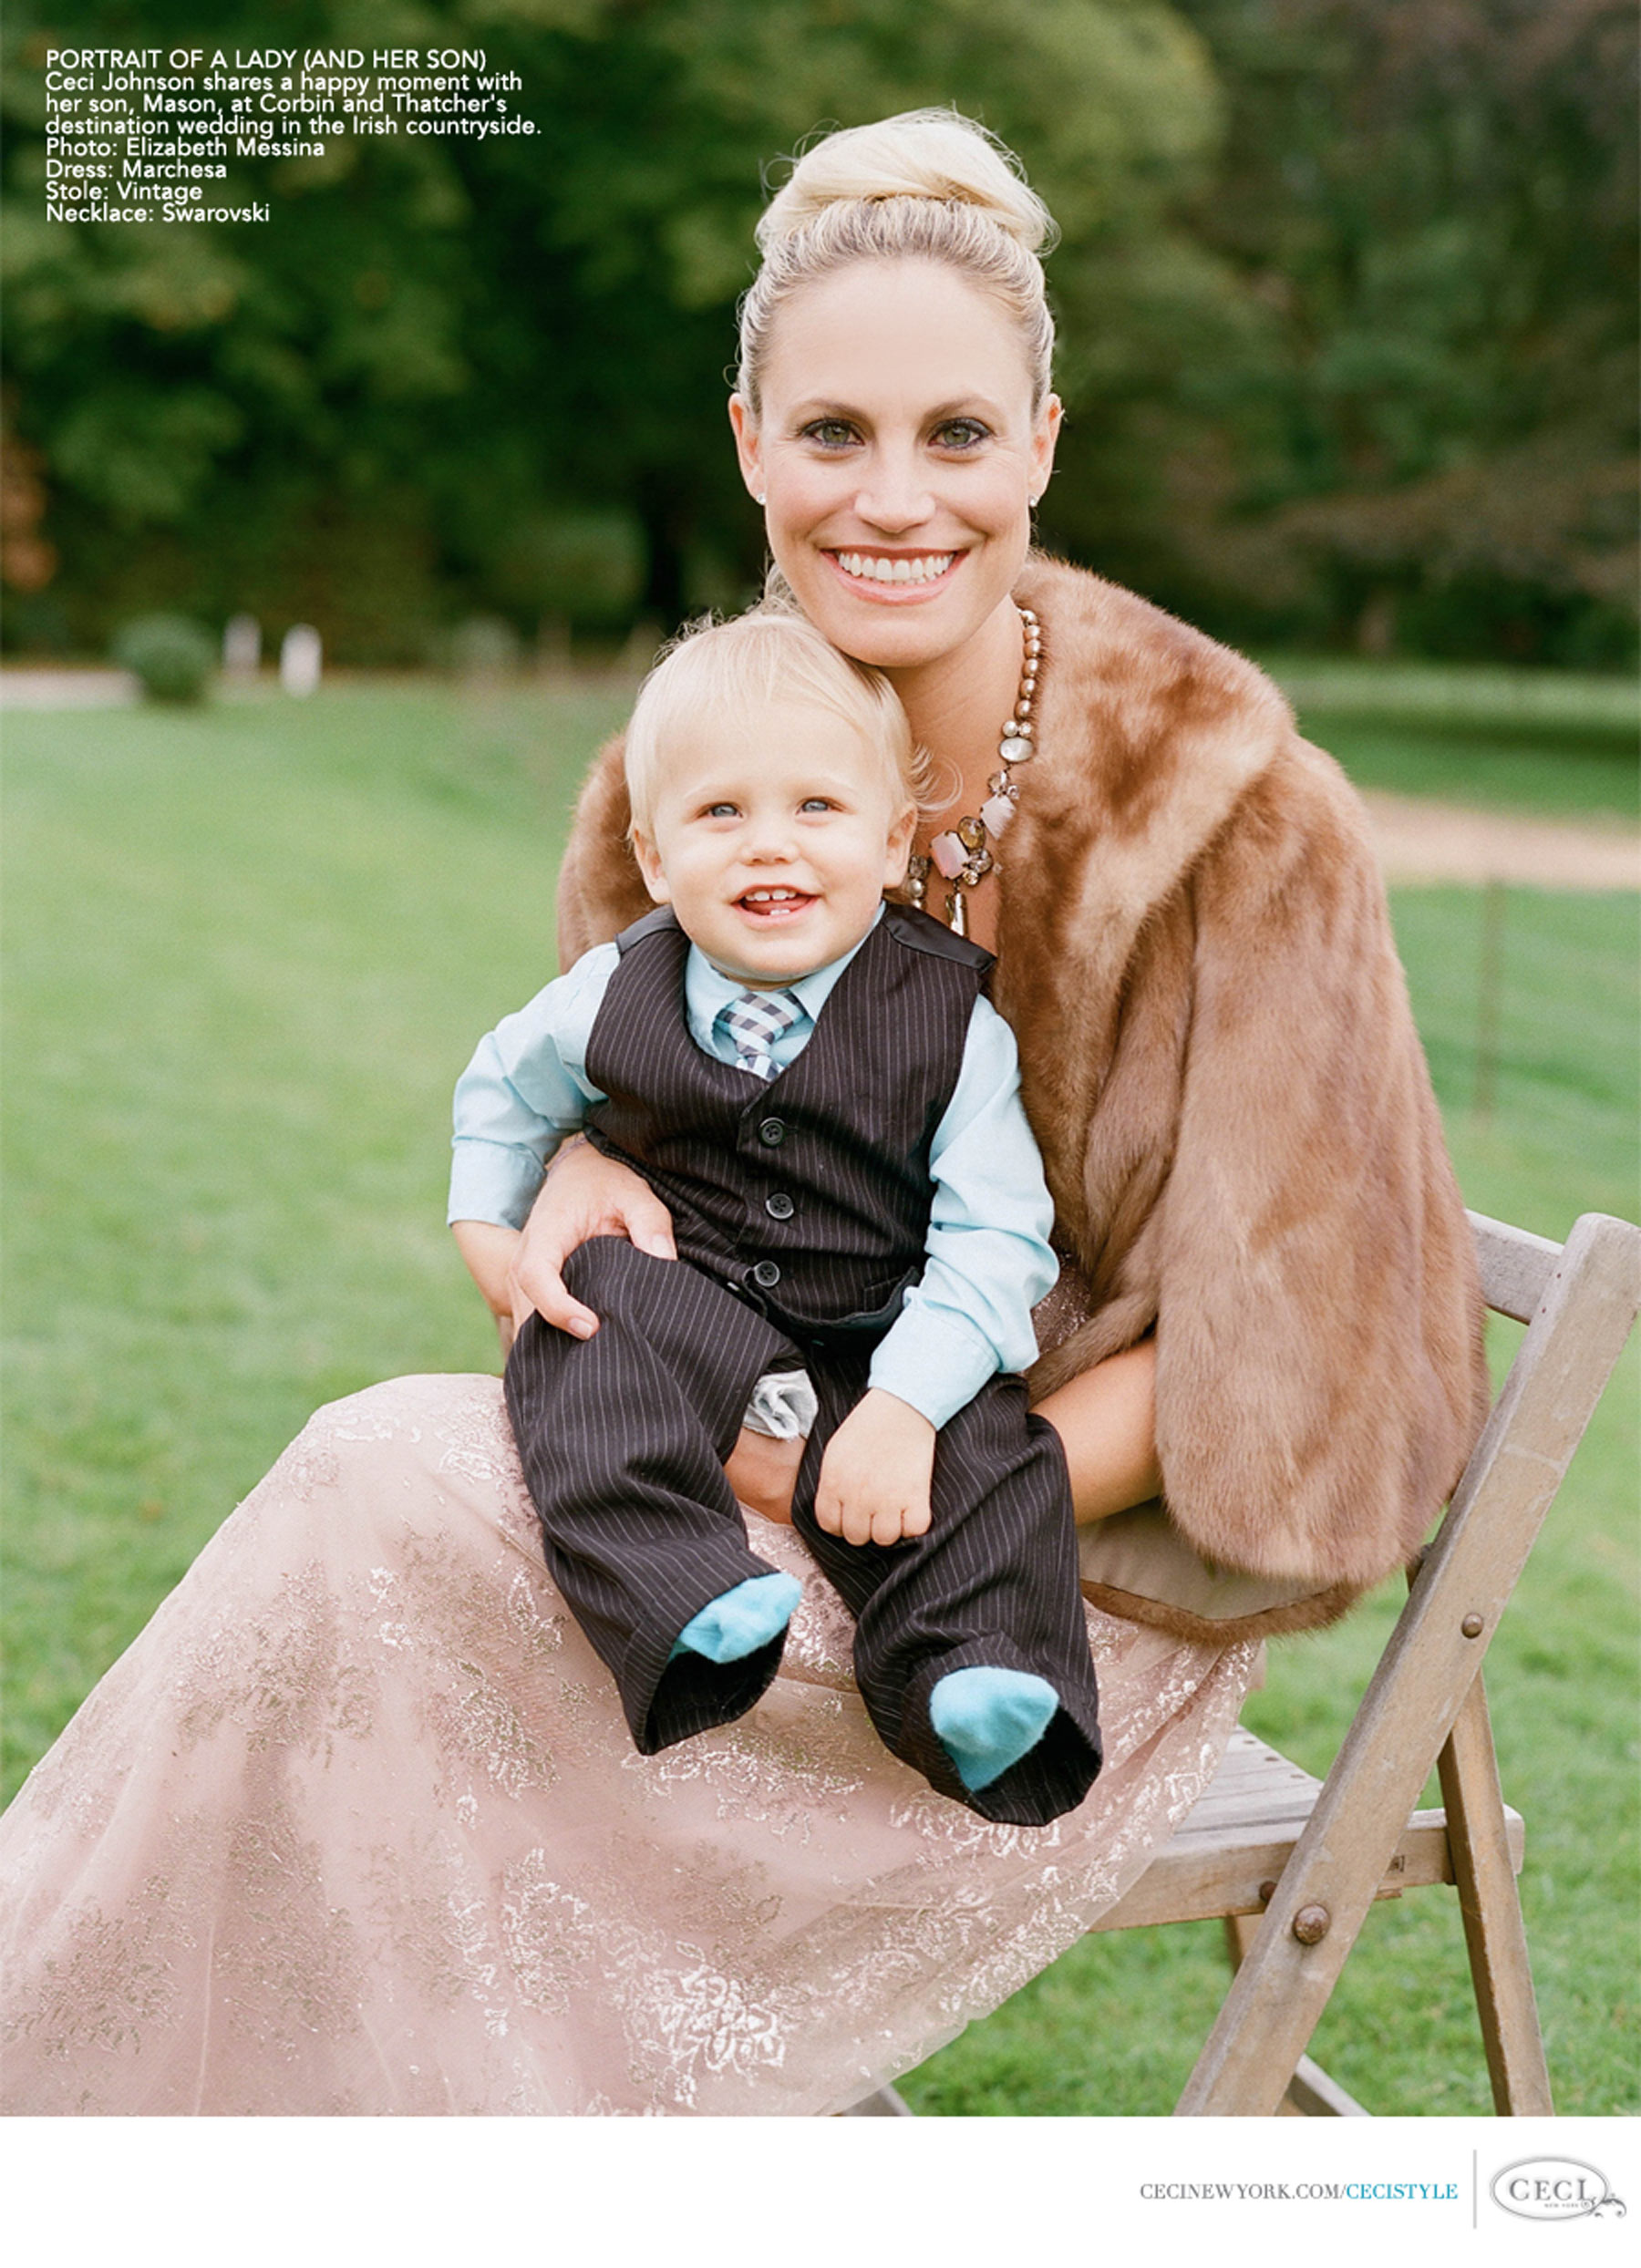 Ceci Johnson of Ceci New York - PORTRAIT OF A LADY (AND HER SON): Ceci Johnson shares a happy moment with her son, Mason, at Corbin and Thatcher's destination wedding in the Irish countryside. Photo: Elizabeth Messina. Dress: Marchesa. Stole: Vintage. Necklace: Swarovski.